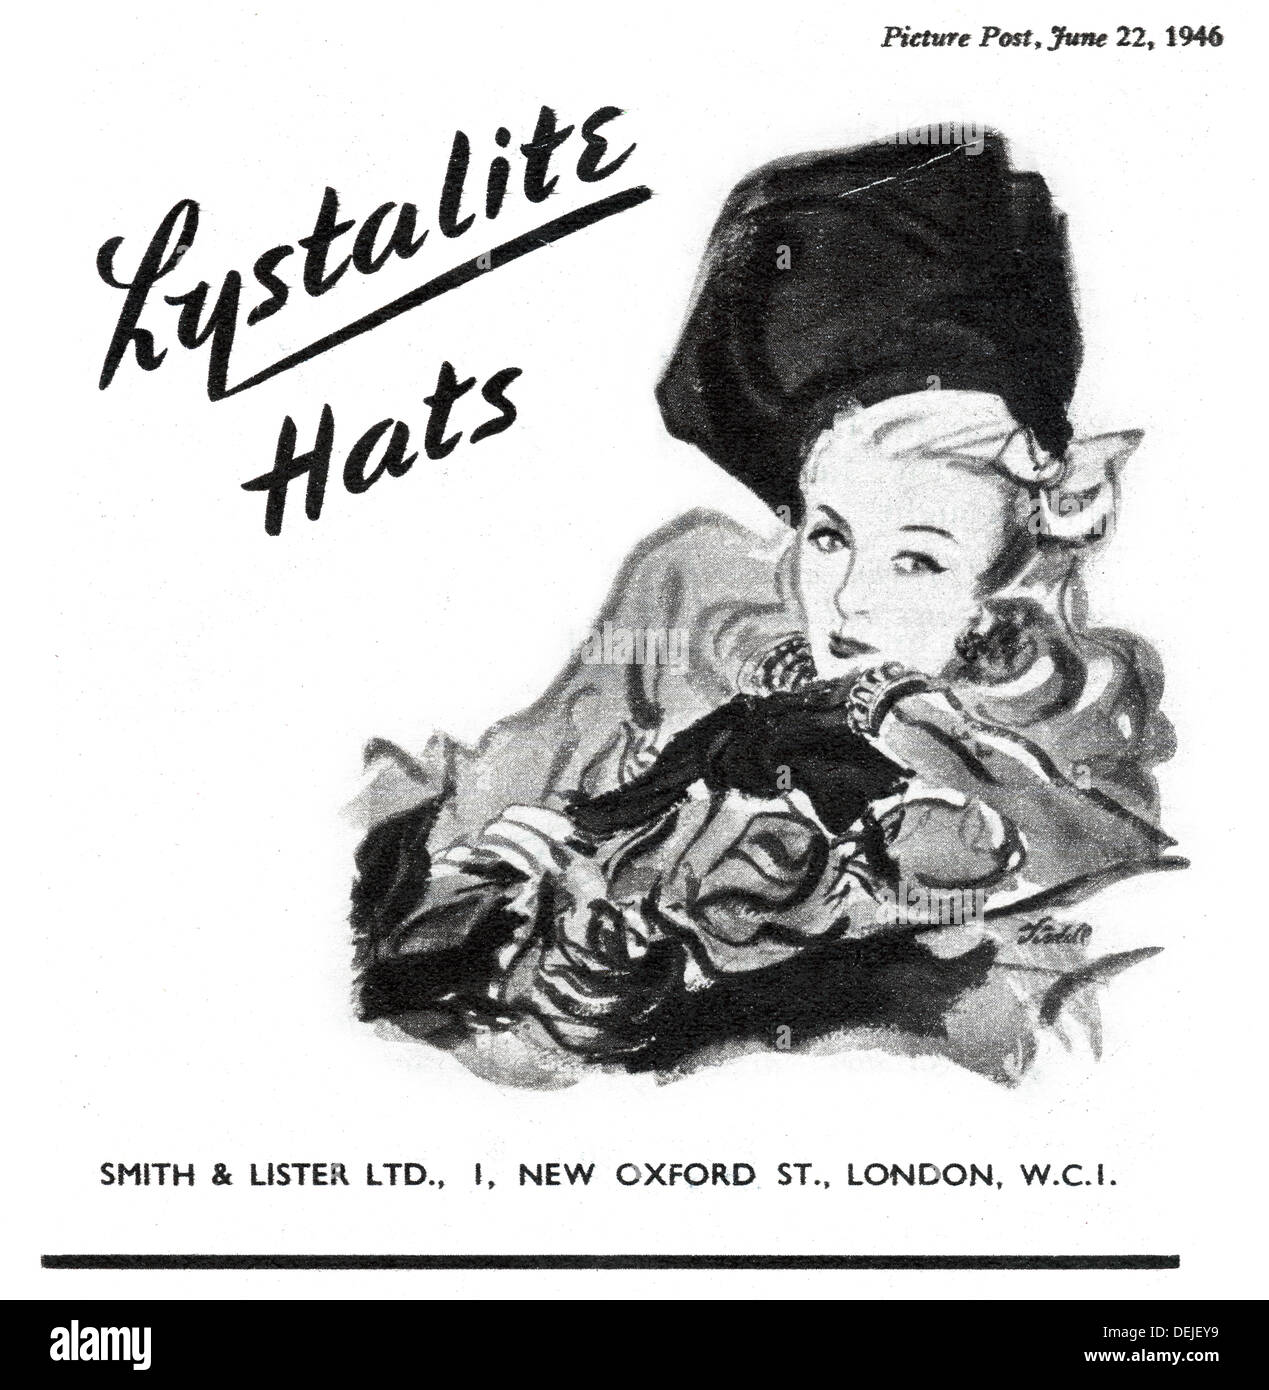 advert for Lystalite hats in 1946 in the UK - Stock Image